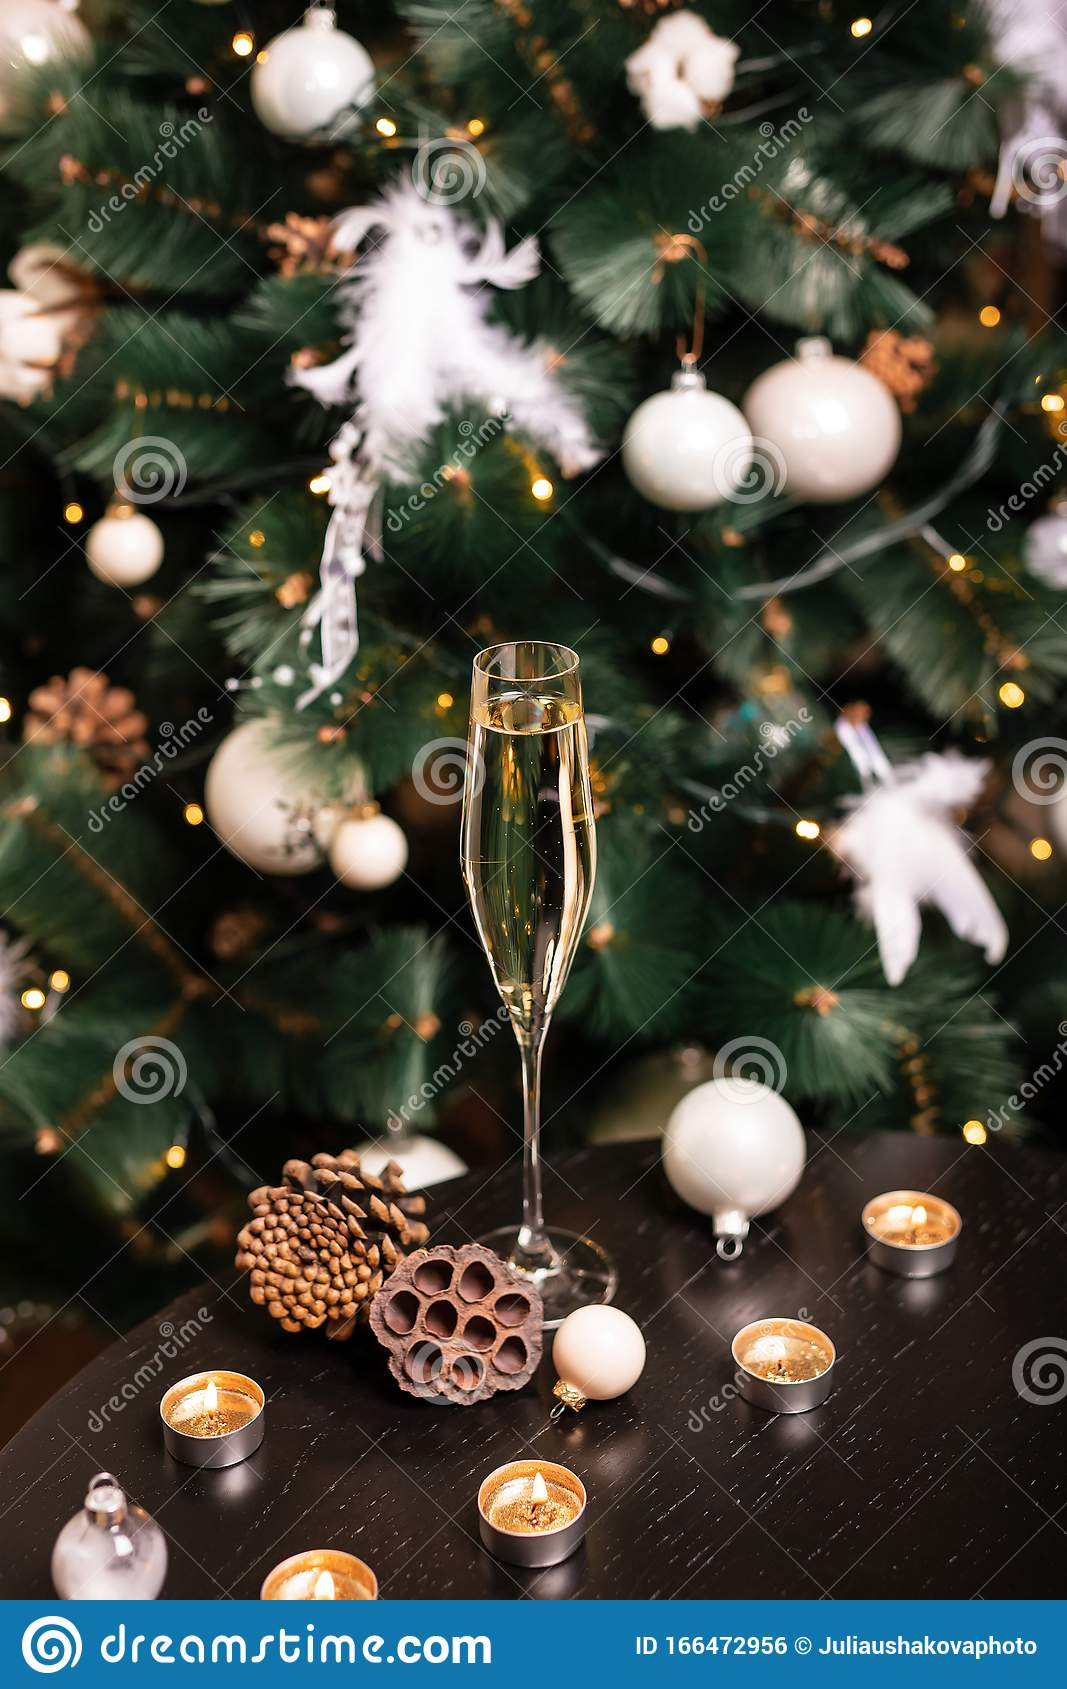 New Year Champagne Against The Background Of Christmas Tree And Bokeh Lights Stock Photo Image Of Crystal Chardonnay 166472956